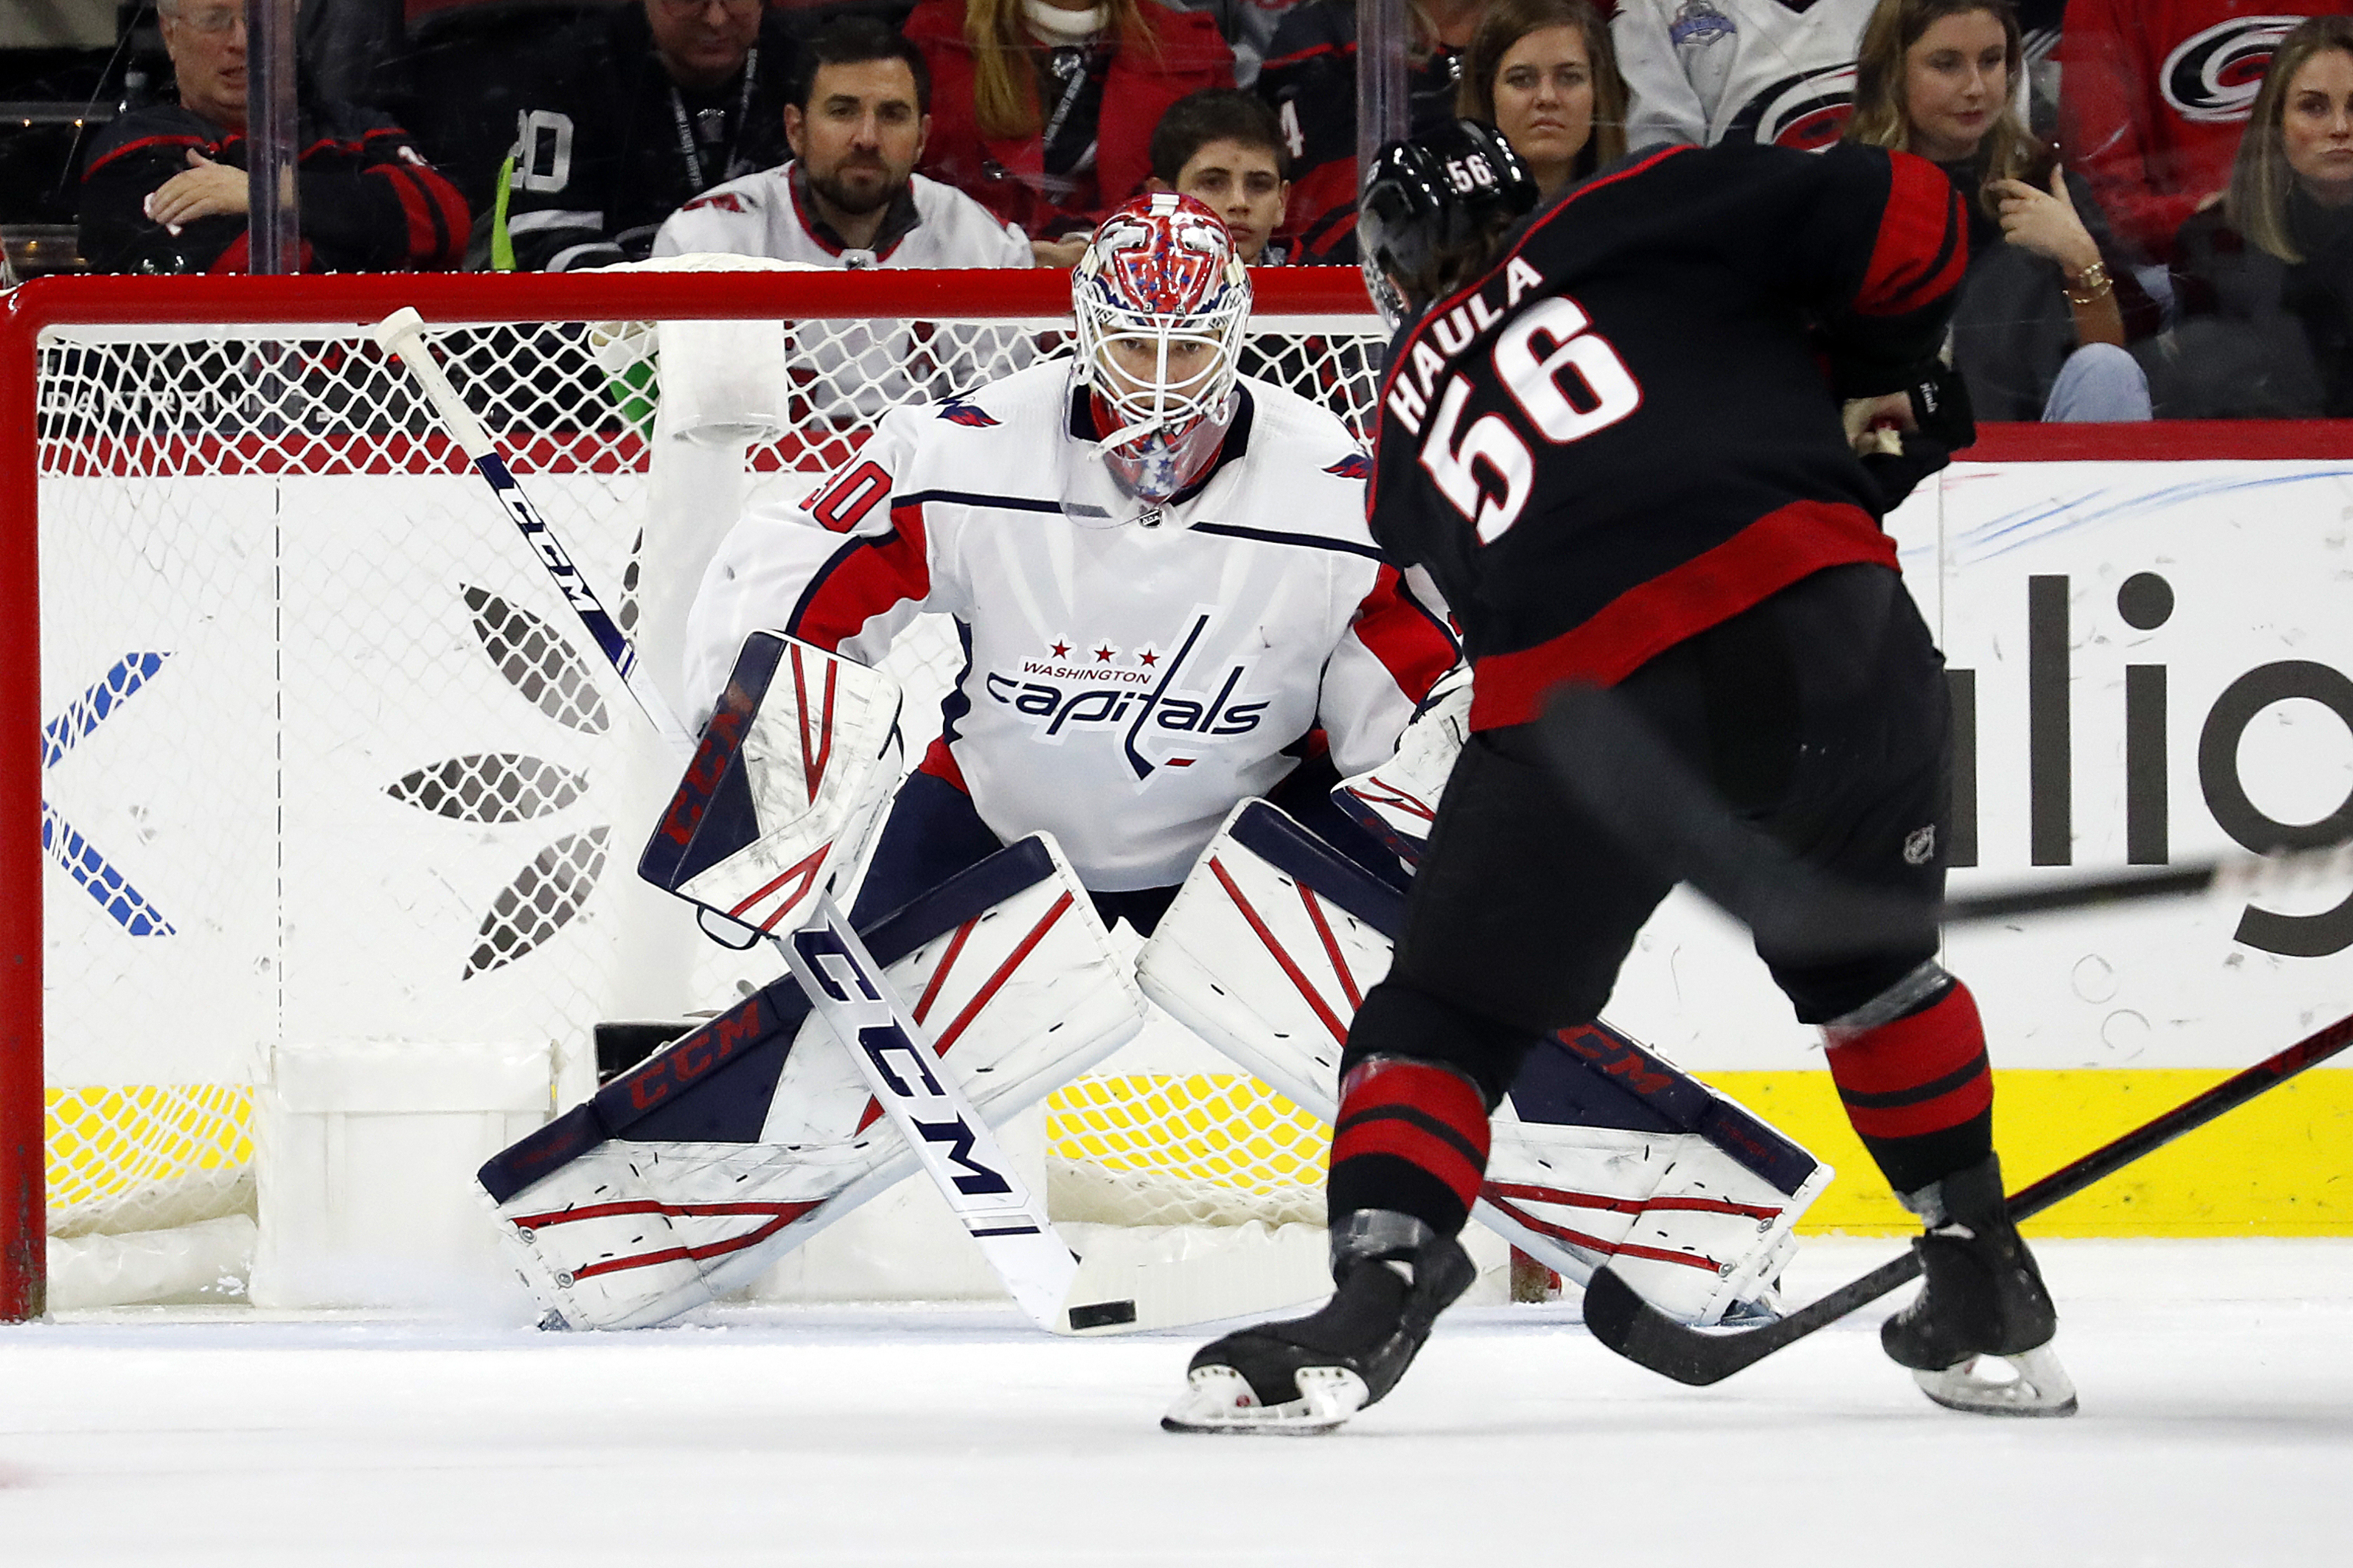 Capitals edge Hurricanes behind Samsonov's 38 saves